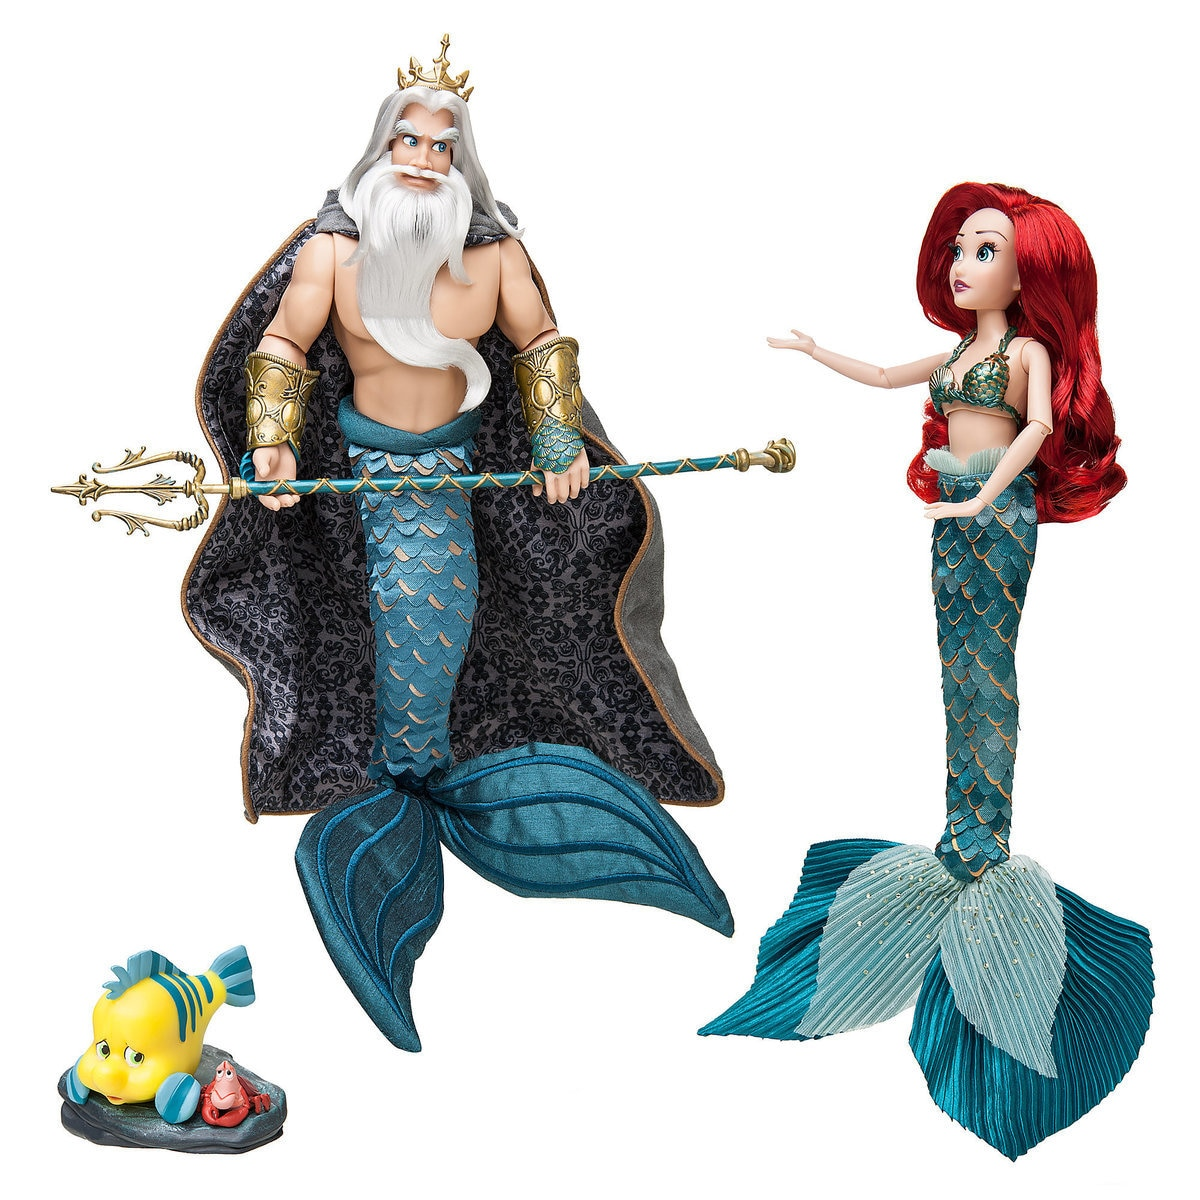 598e9da5c51 Product Image of Ariel and Triton Doll Set - Disney Designer Fairytale  Collection - Limited Edition